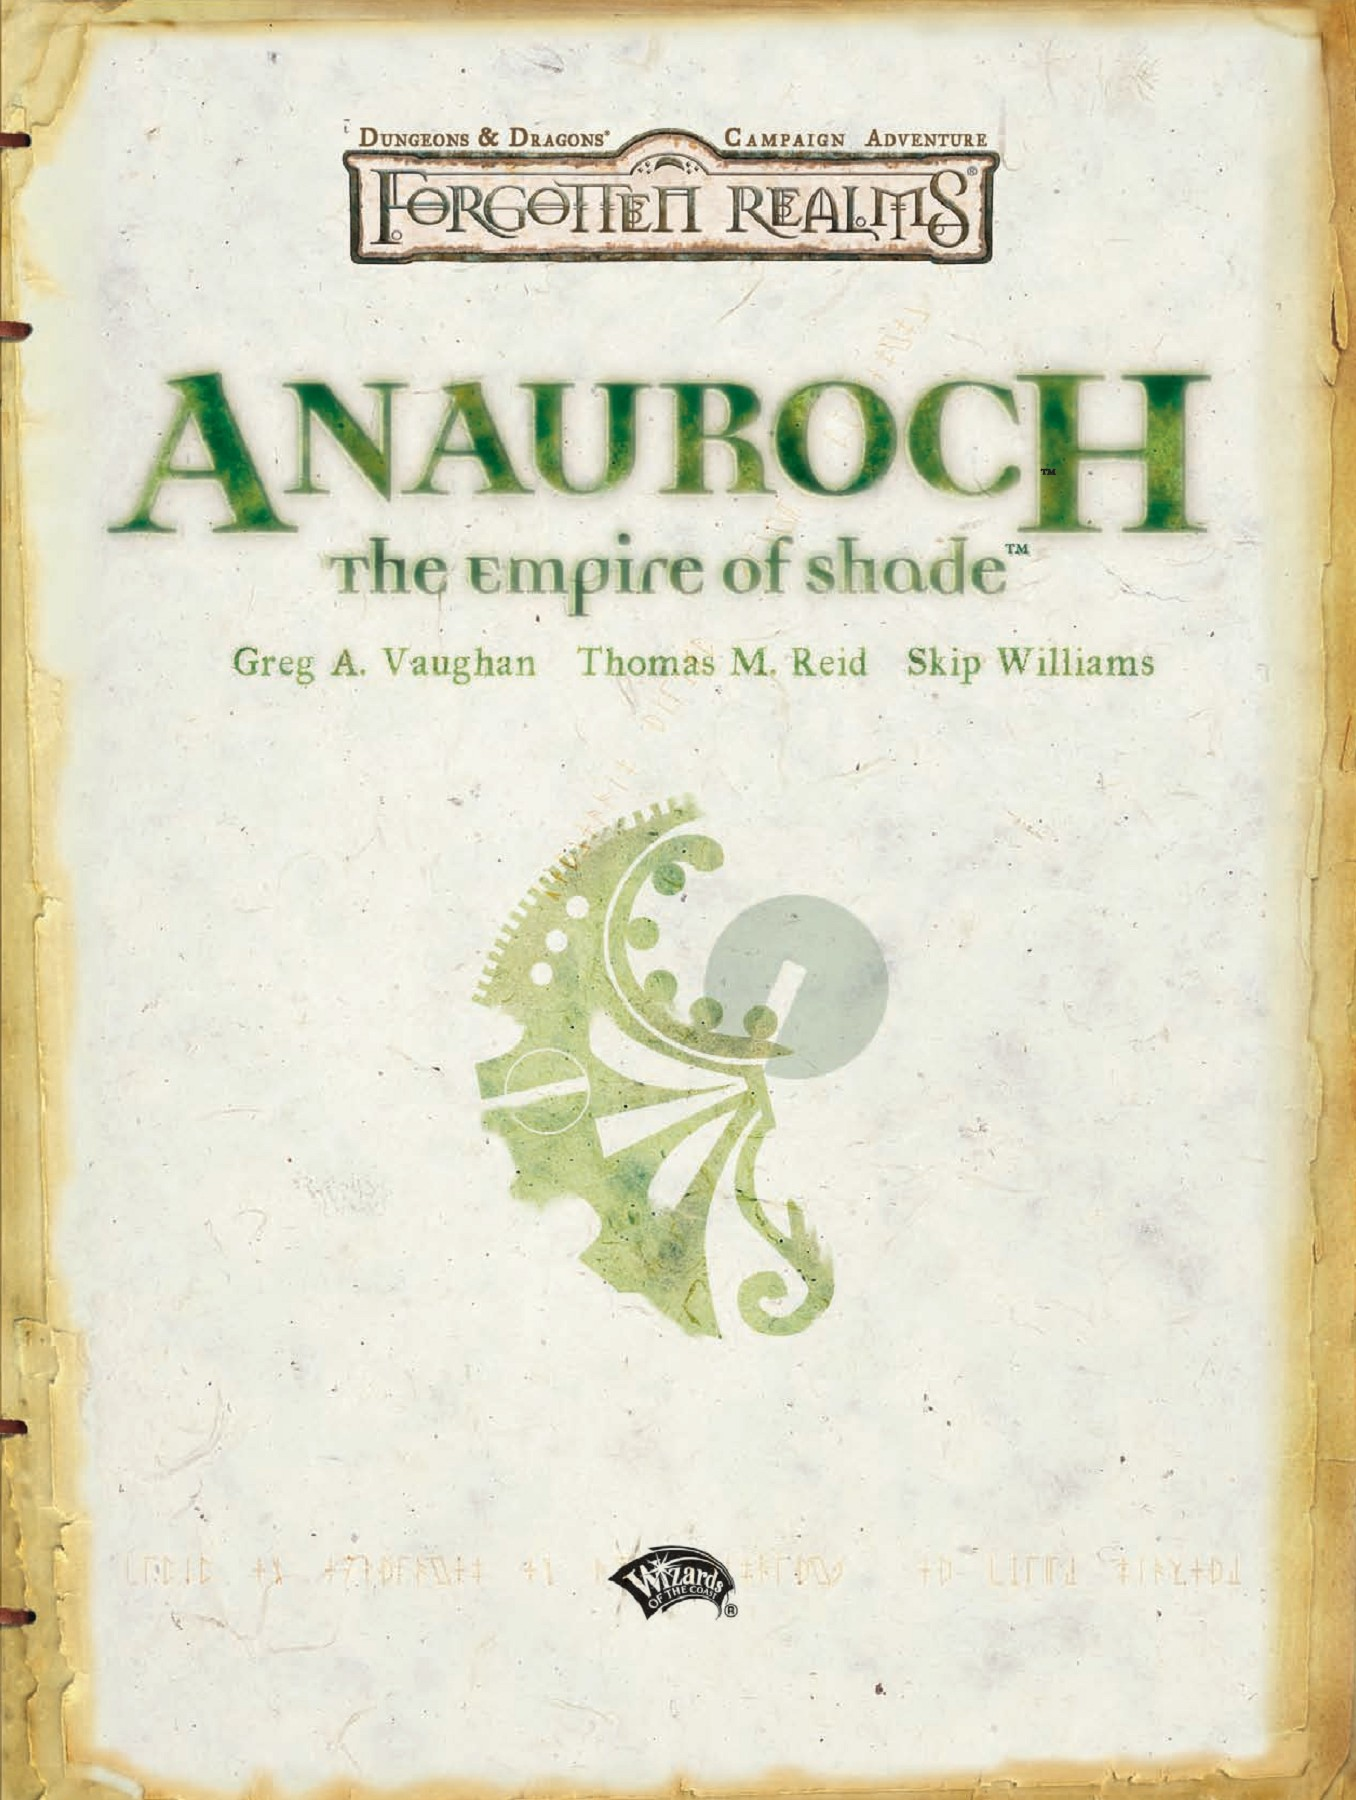 D&D 3 5 Adventure Anauroch The Empire Of Shade 9-13 Pages 51